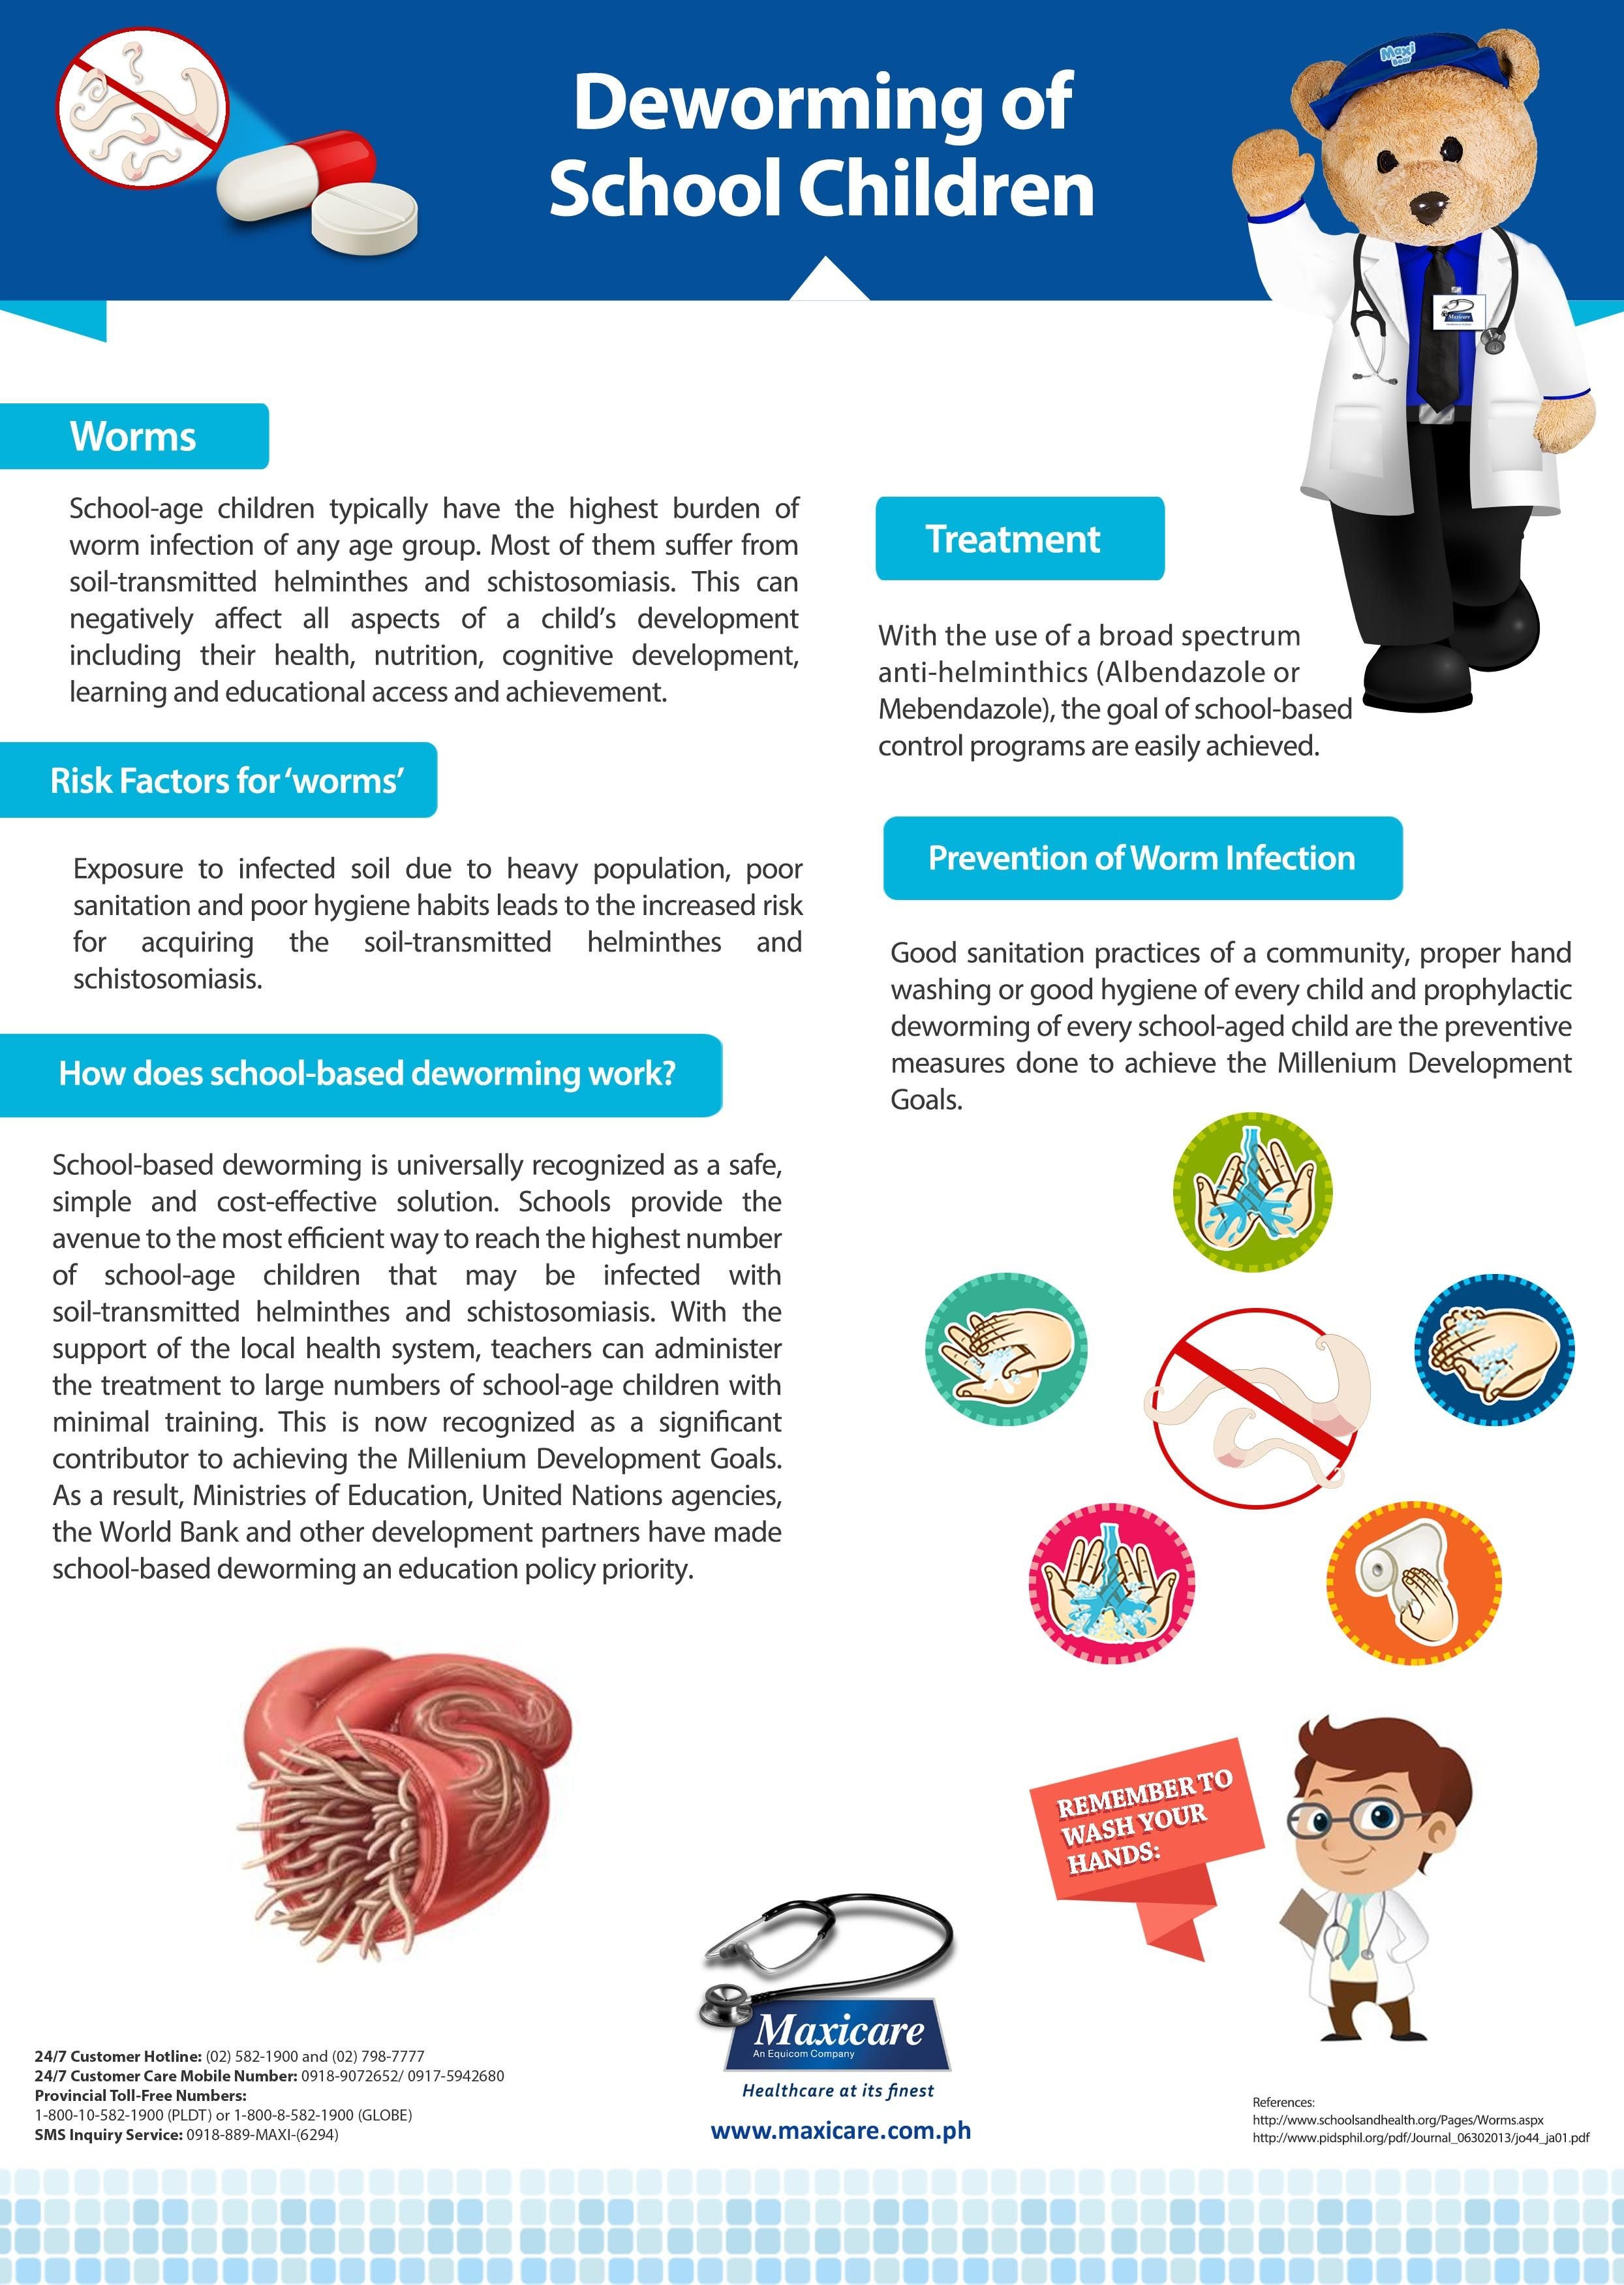 What should be the prophylaxis of worms in a child